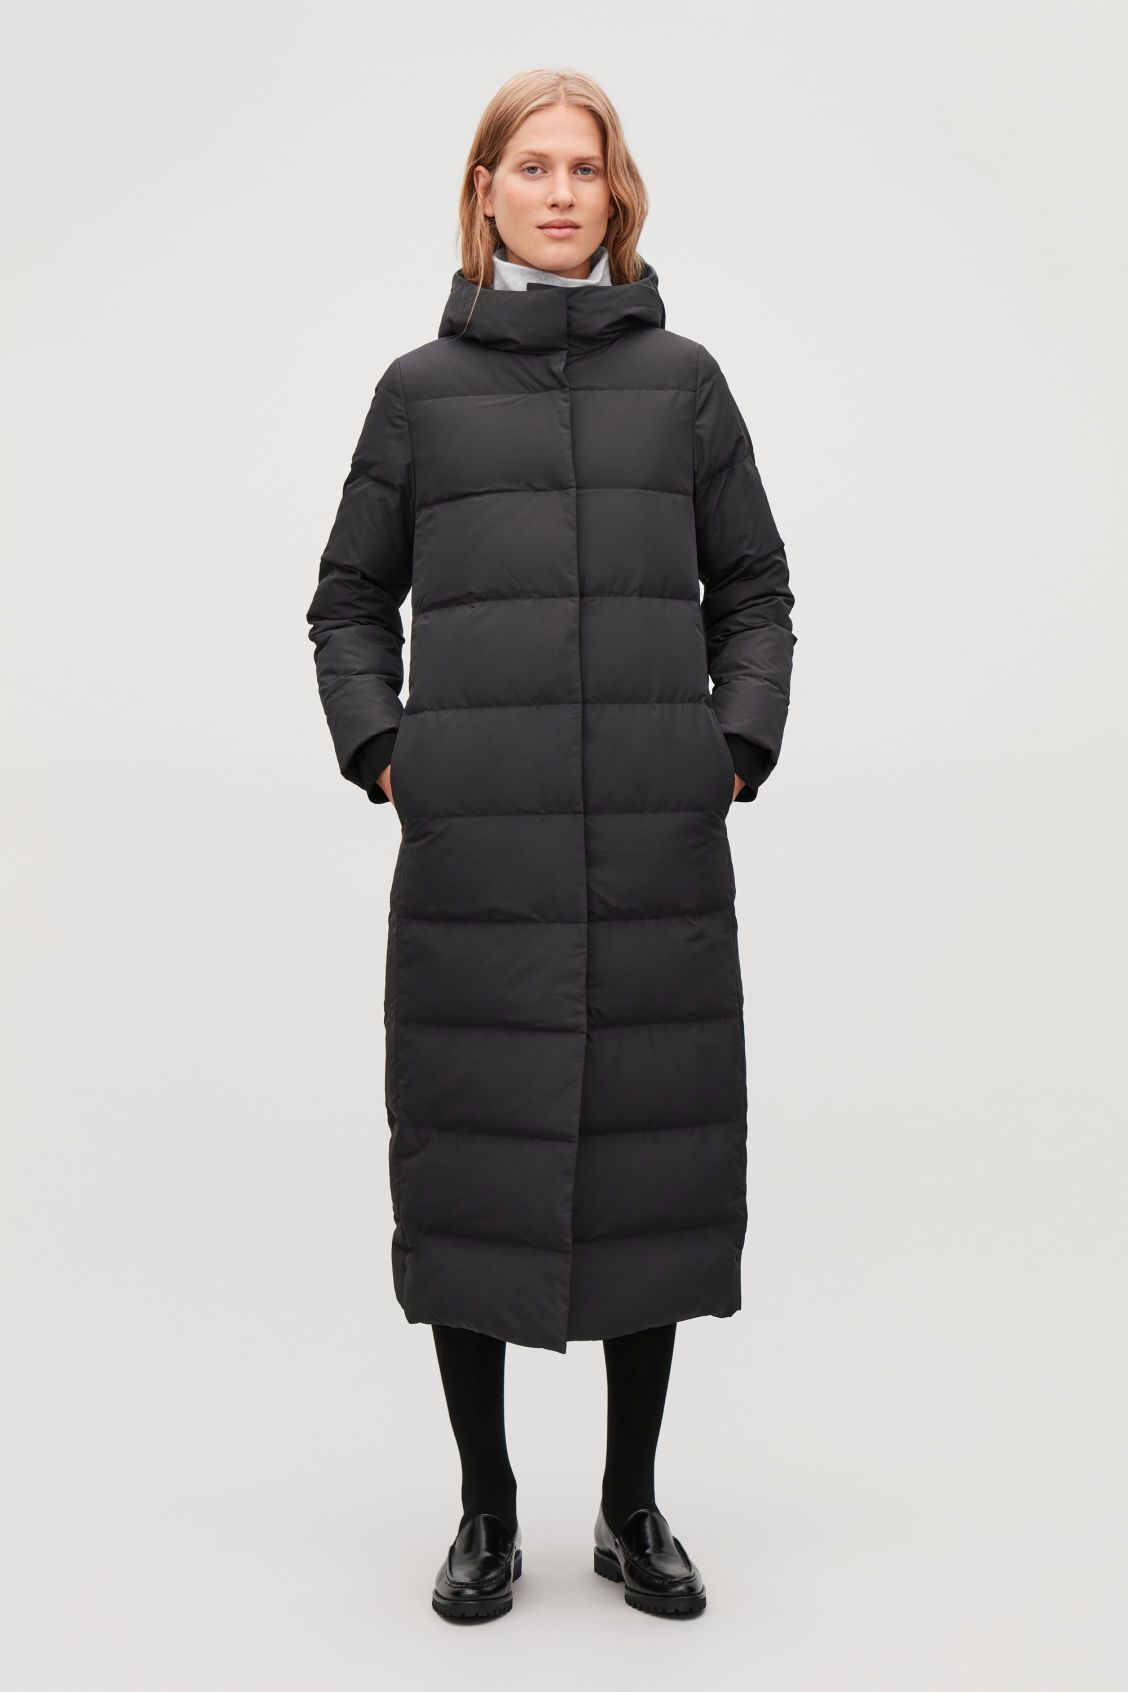 Black Long Cos Coat Coatsamp; Puffer Jackets In Hooded QBeWEdxrCo